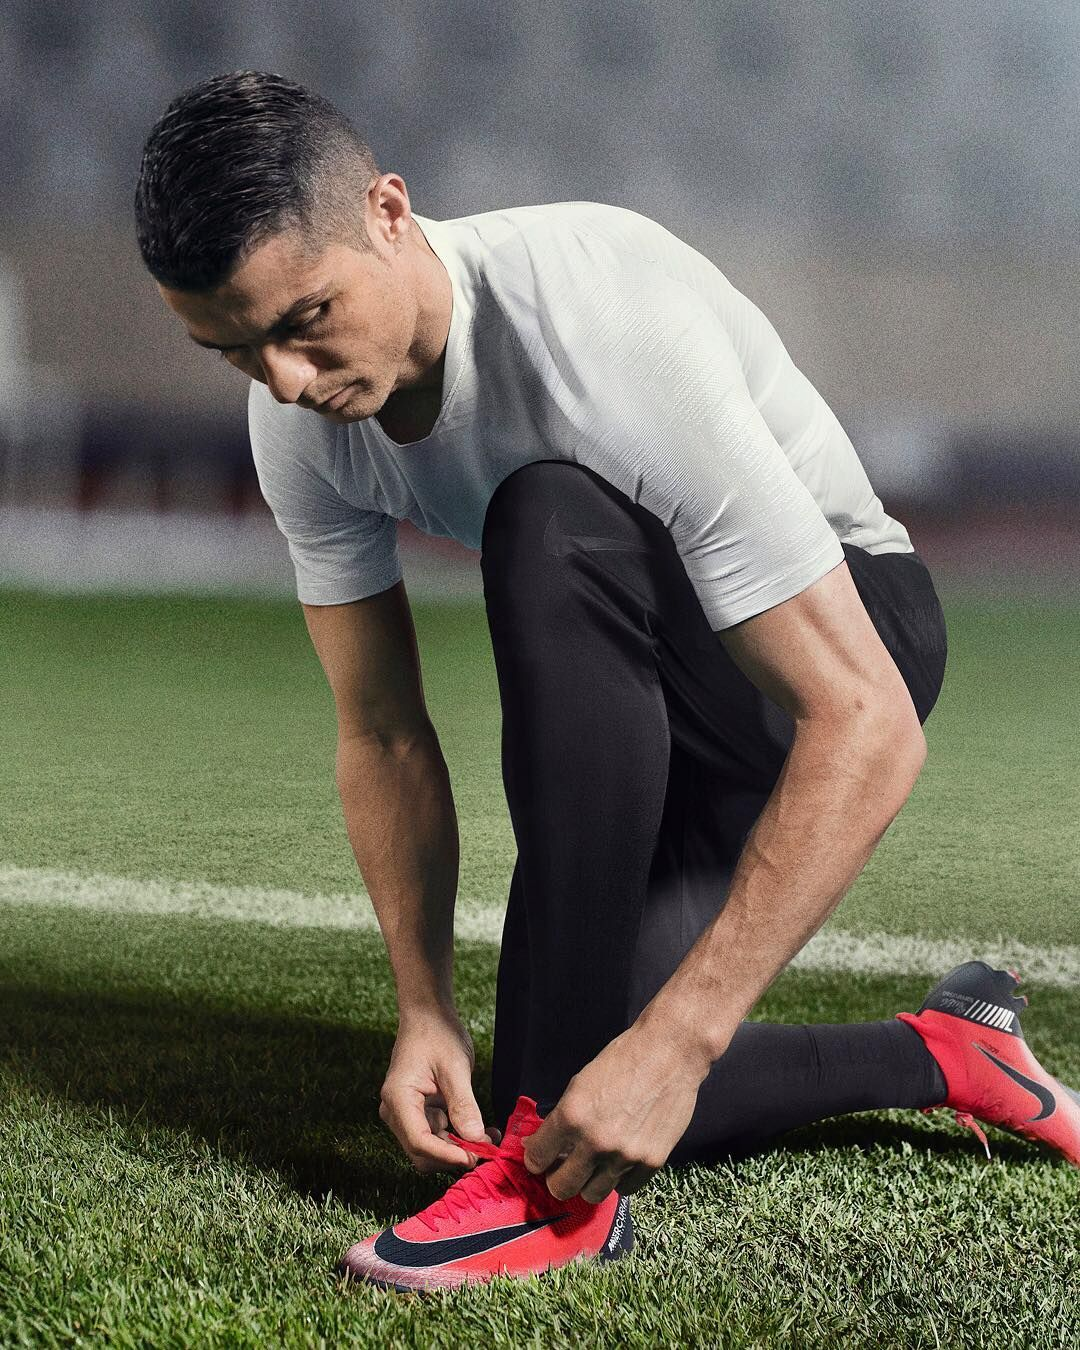 Cristiano Ronaldo On Instagram Excited To Continue My Legacy In The New Nikefootball Ch 7 Built On Dreams Mer Cristiano Ronaldo Ronaldo Ronaldo Cristiano